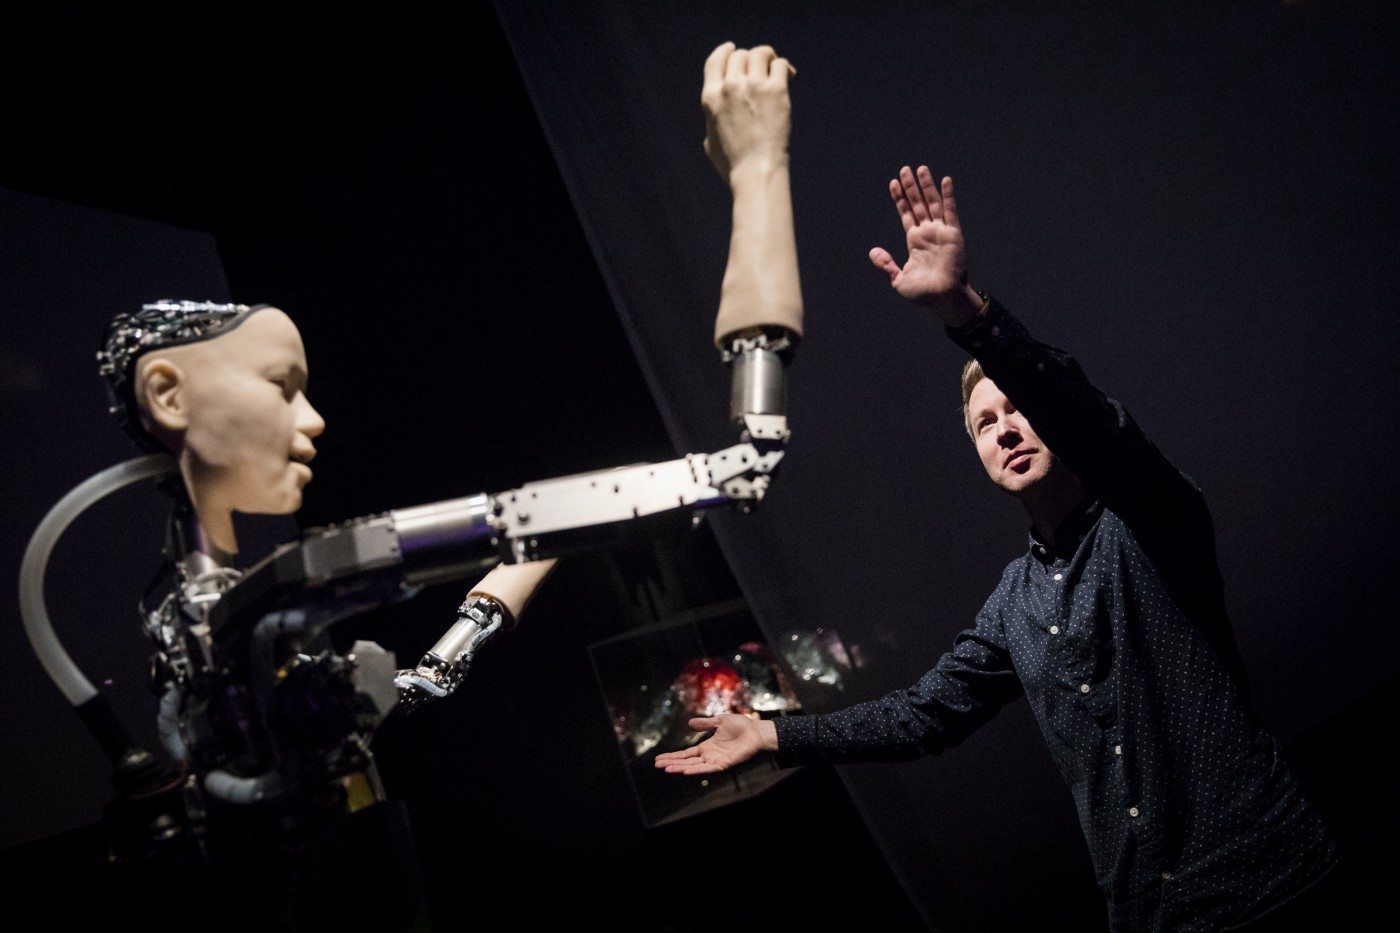 A person mirroring the movements of the humanoid robot Alter 3.